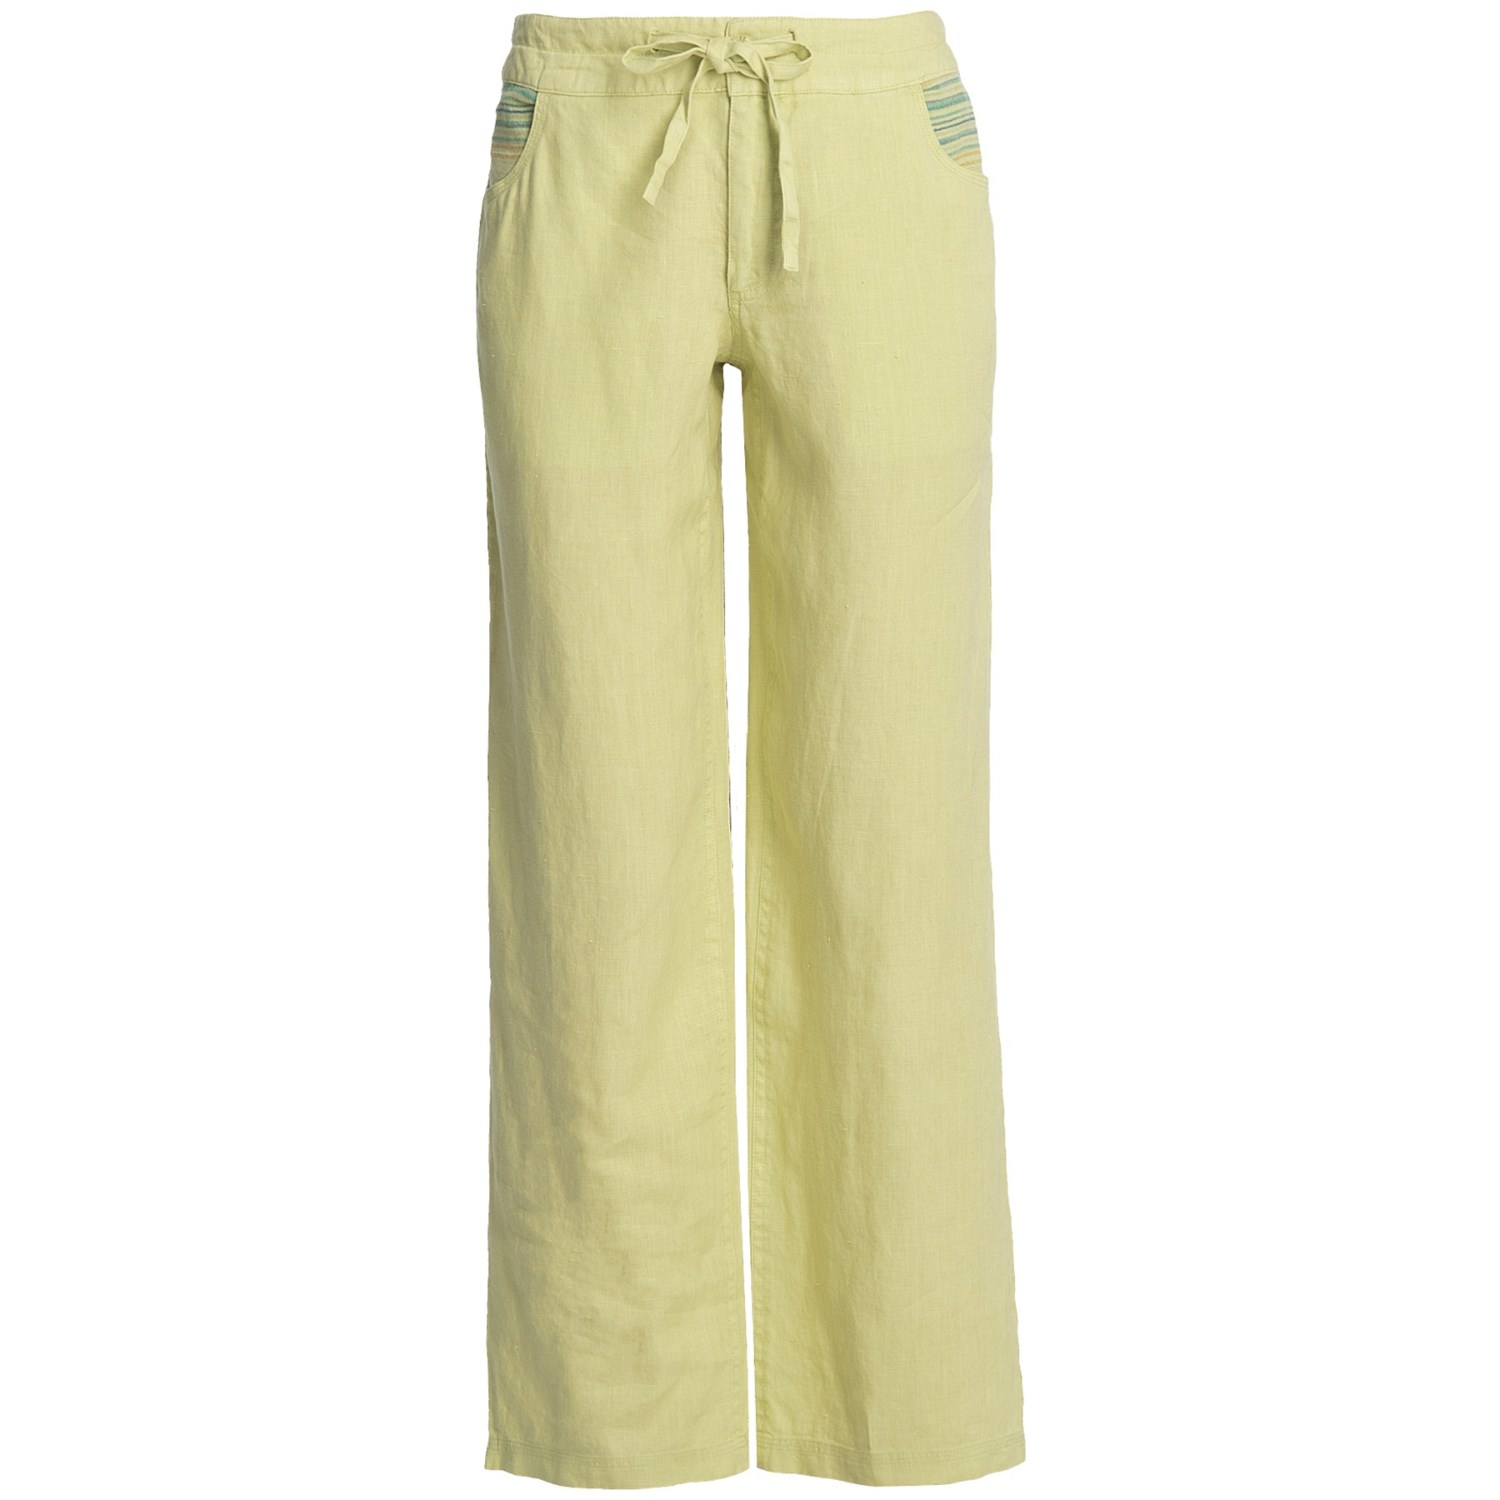 Beautiful Linen Pants Womens With Simple Inspiration In Ireland U2013 Playzoa.com